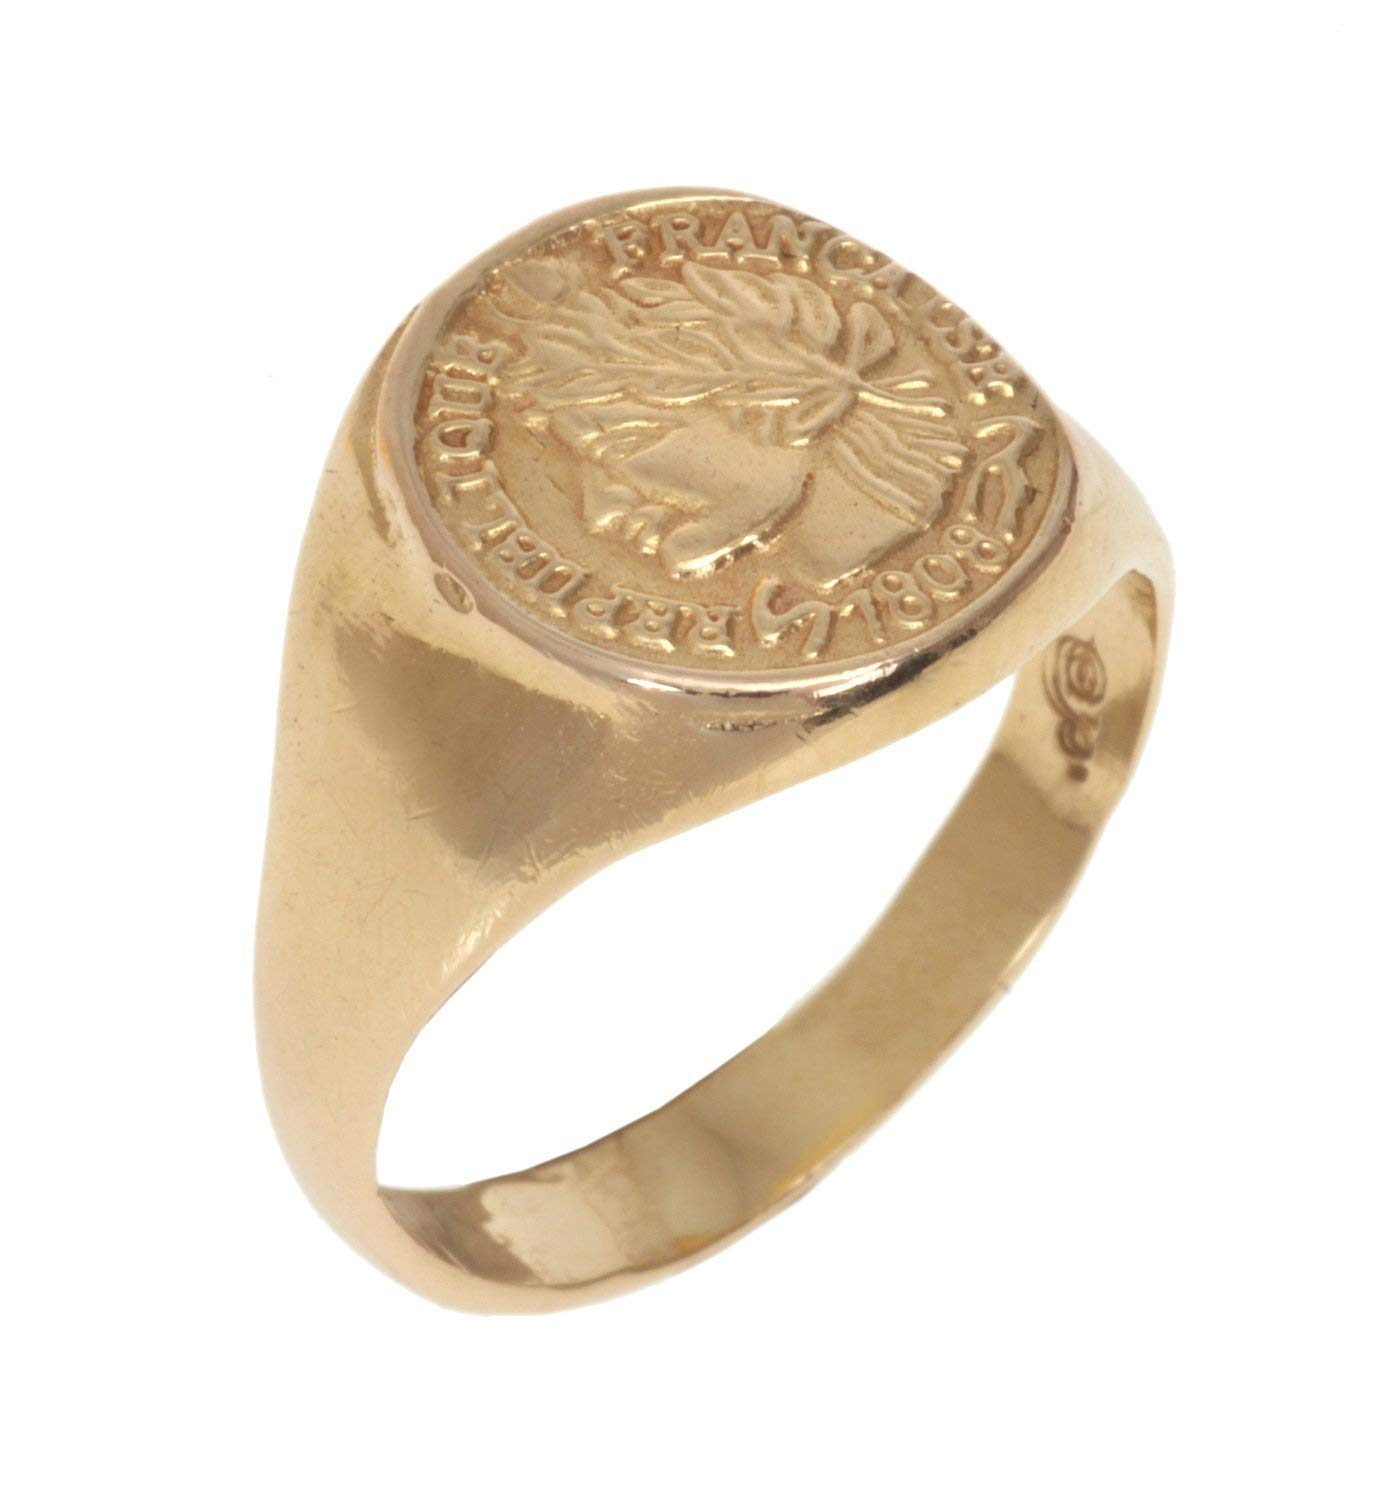 9a46a3ddde Get Quotations · Coin Signet Ring, Handmade French Woman Imprint Seal Ring  made from 14K Gold Plated Brass